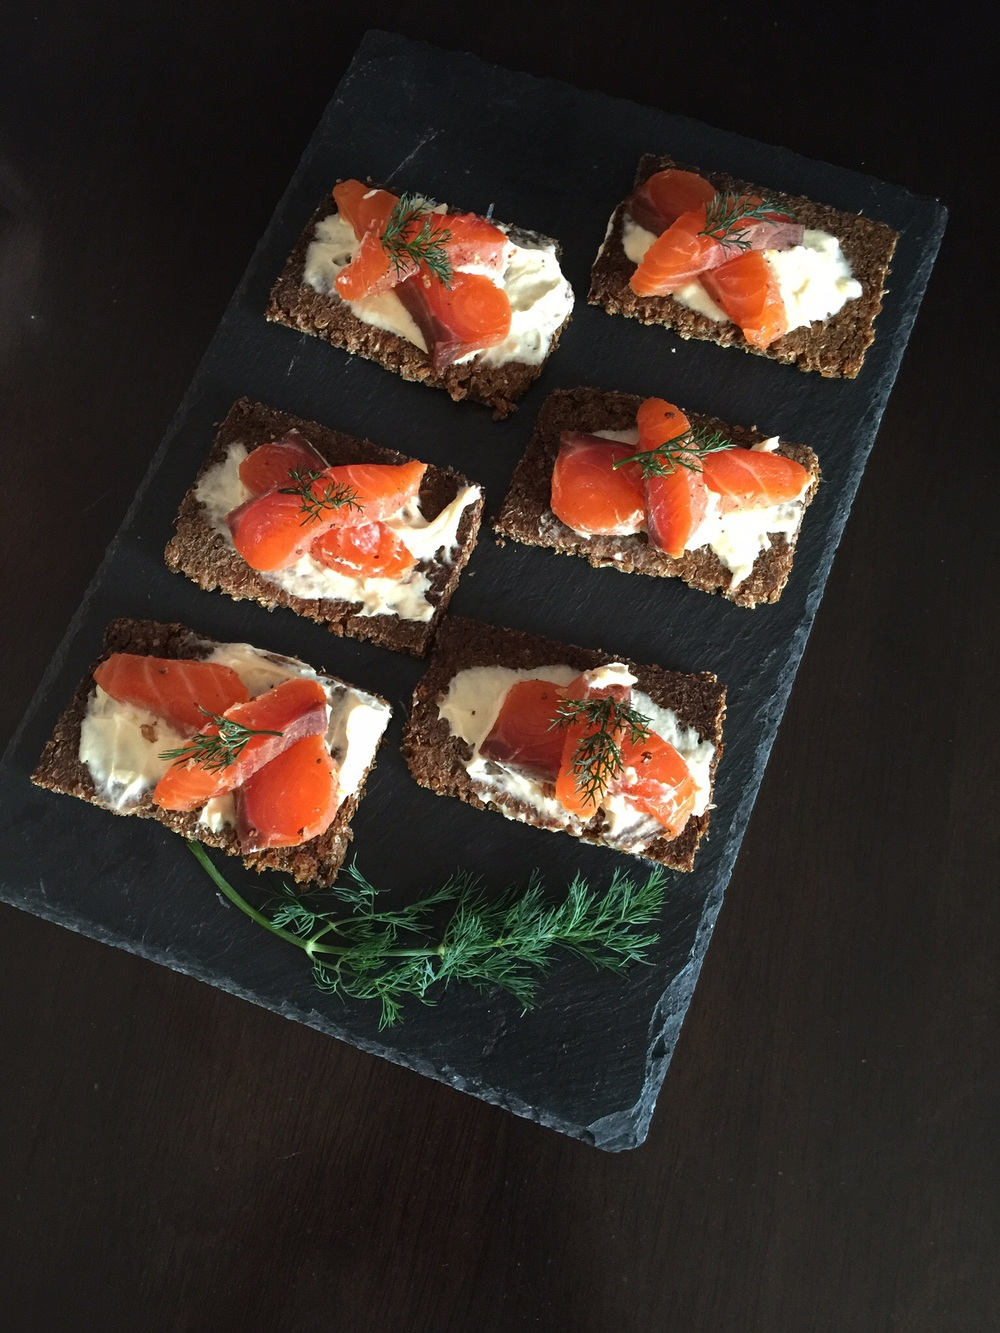 START | gin cured salmon on pumpernickel and creme fraiche